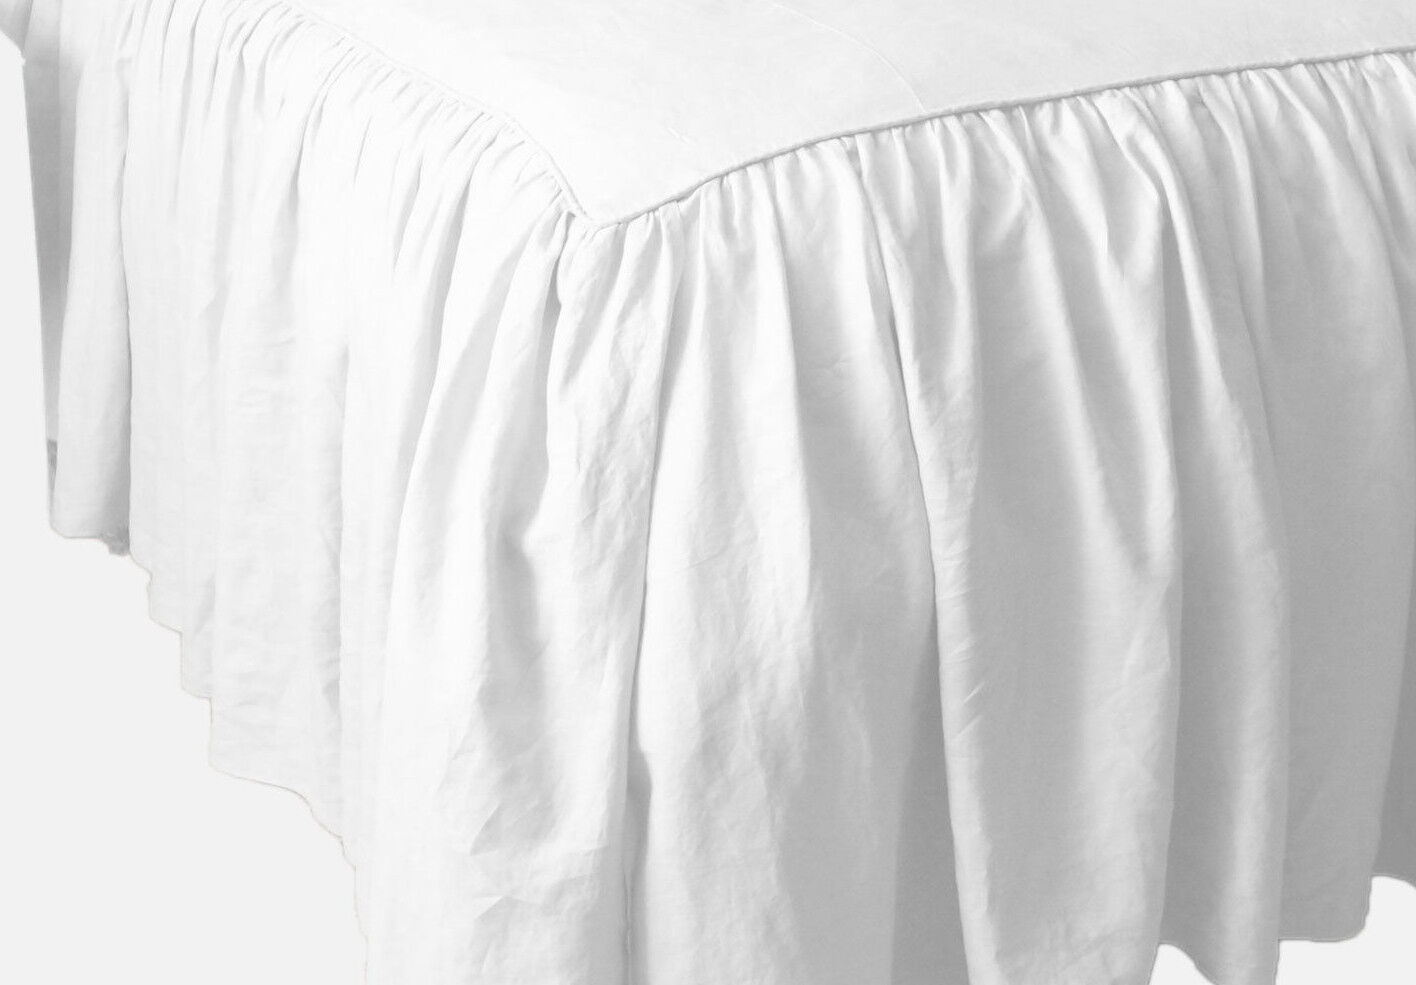 SALE!! DUST RUFFLE BED SKIRT WHITE SOLID 1000 TC COTTON CHOS